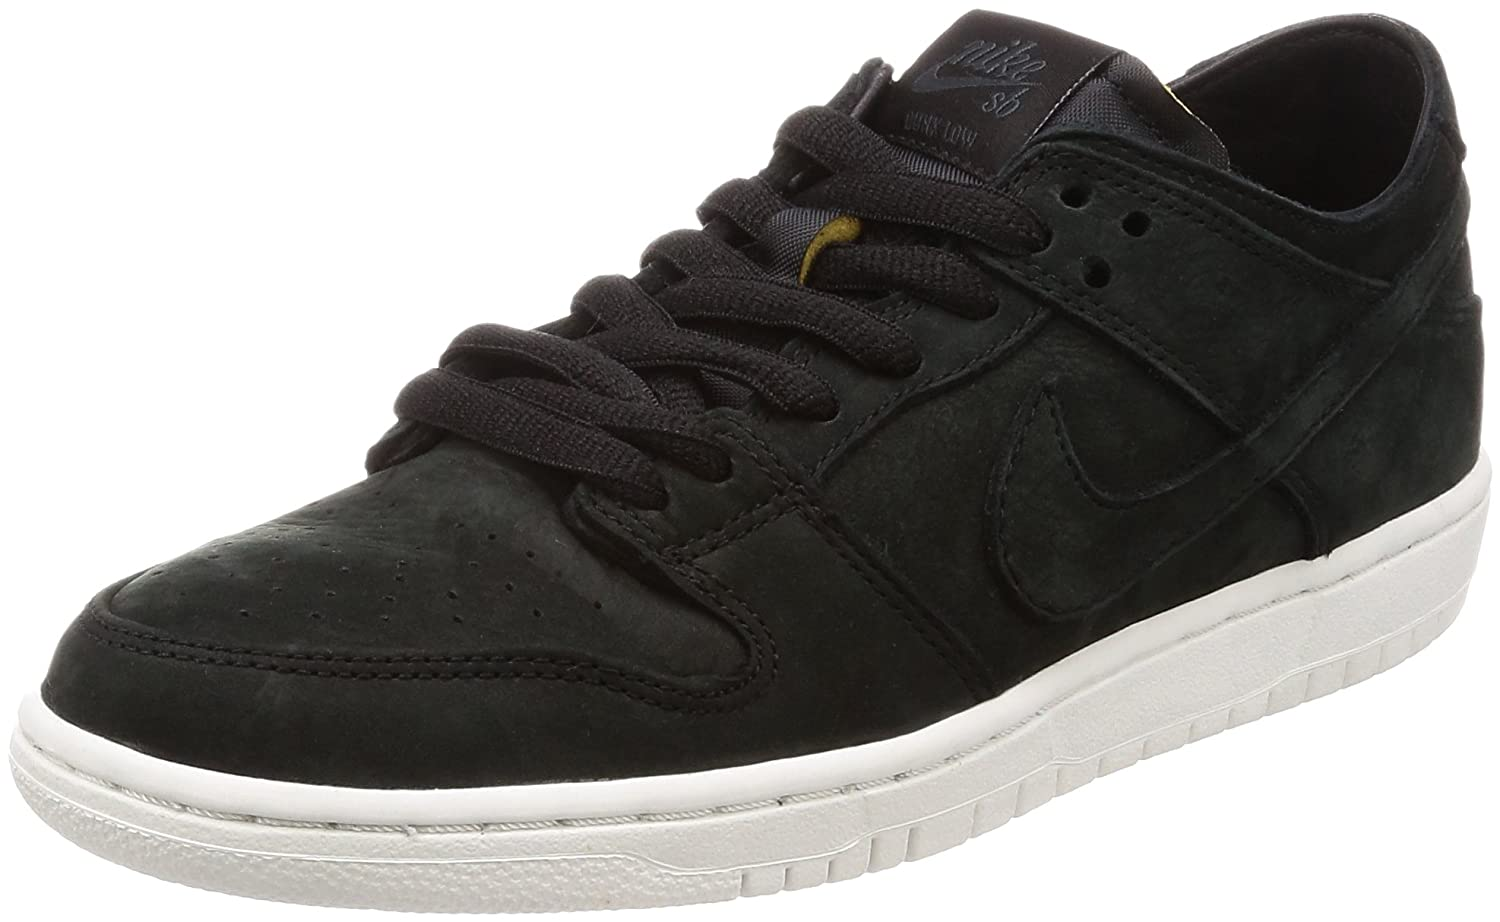 SB Zoom Dunk Low Pro Deconstructed Schuh  43 EU|Black/Black/Summit White